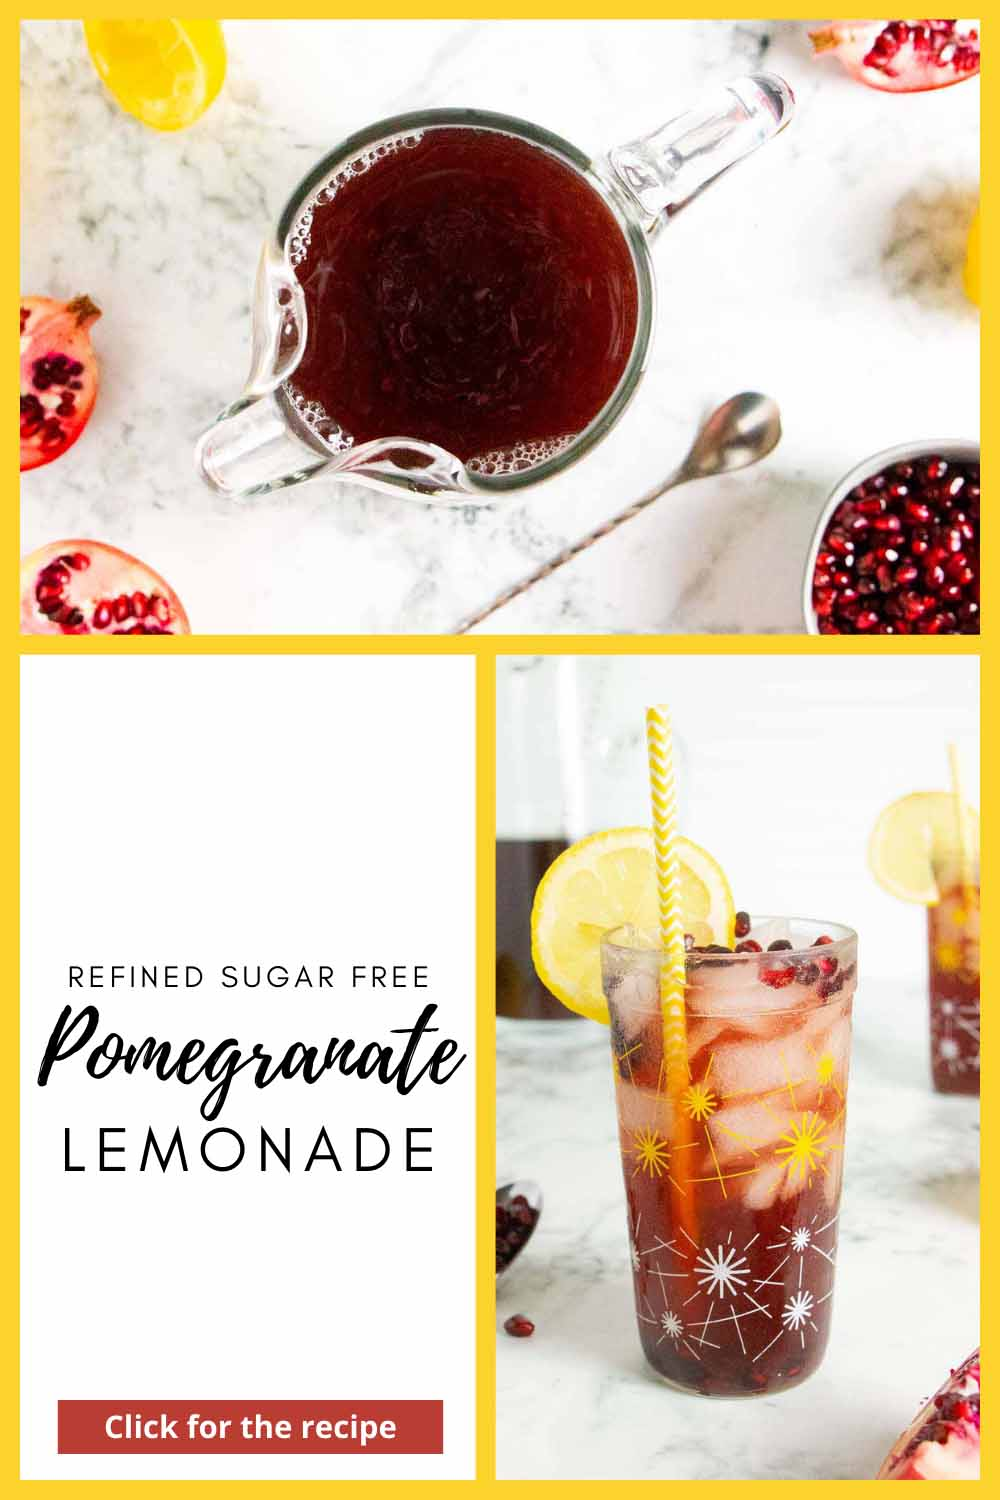 photo collage with text, overhead photo of a pitcher of pomegranate lemonade surrounded by ingredients on a marble table, and a picture of a glass of the lemonade